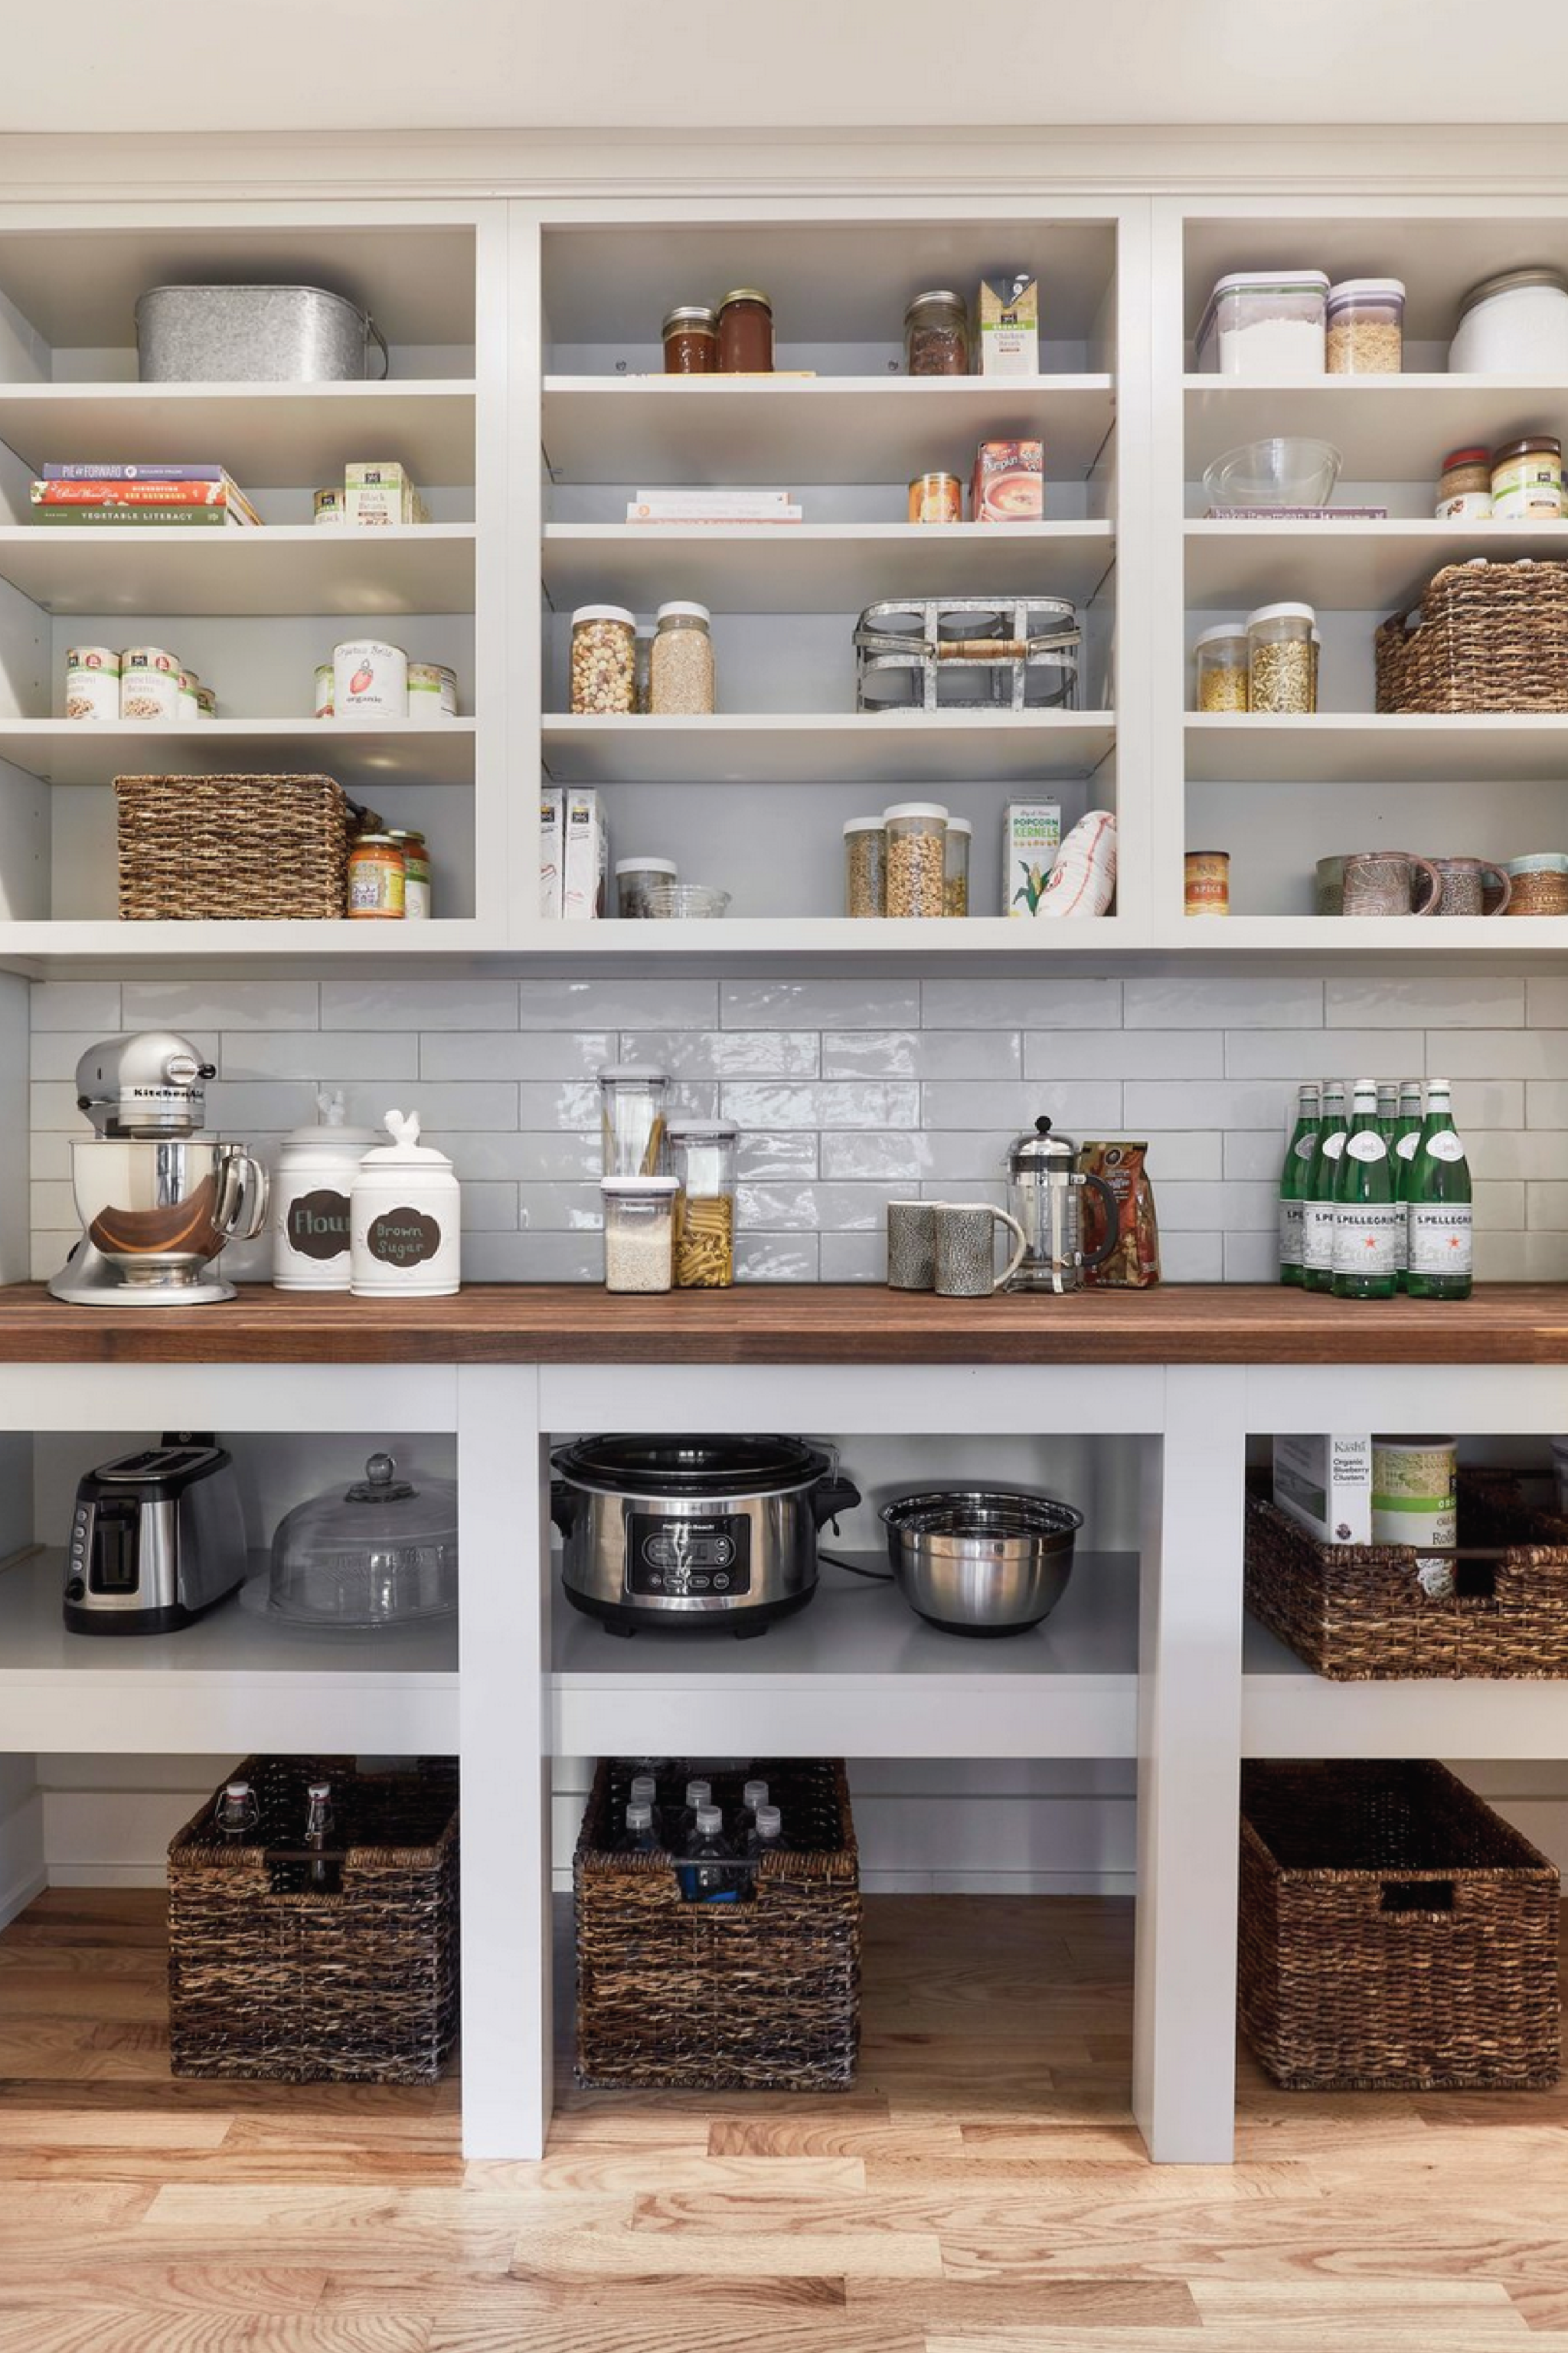 10x10 Room Design: The Best Farmhouse Pantry Inspiration In 2020 (With Images